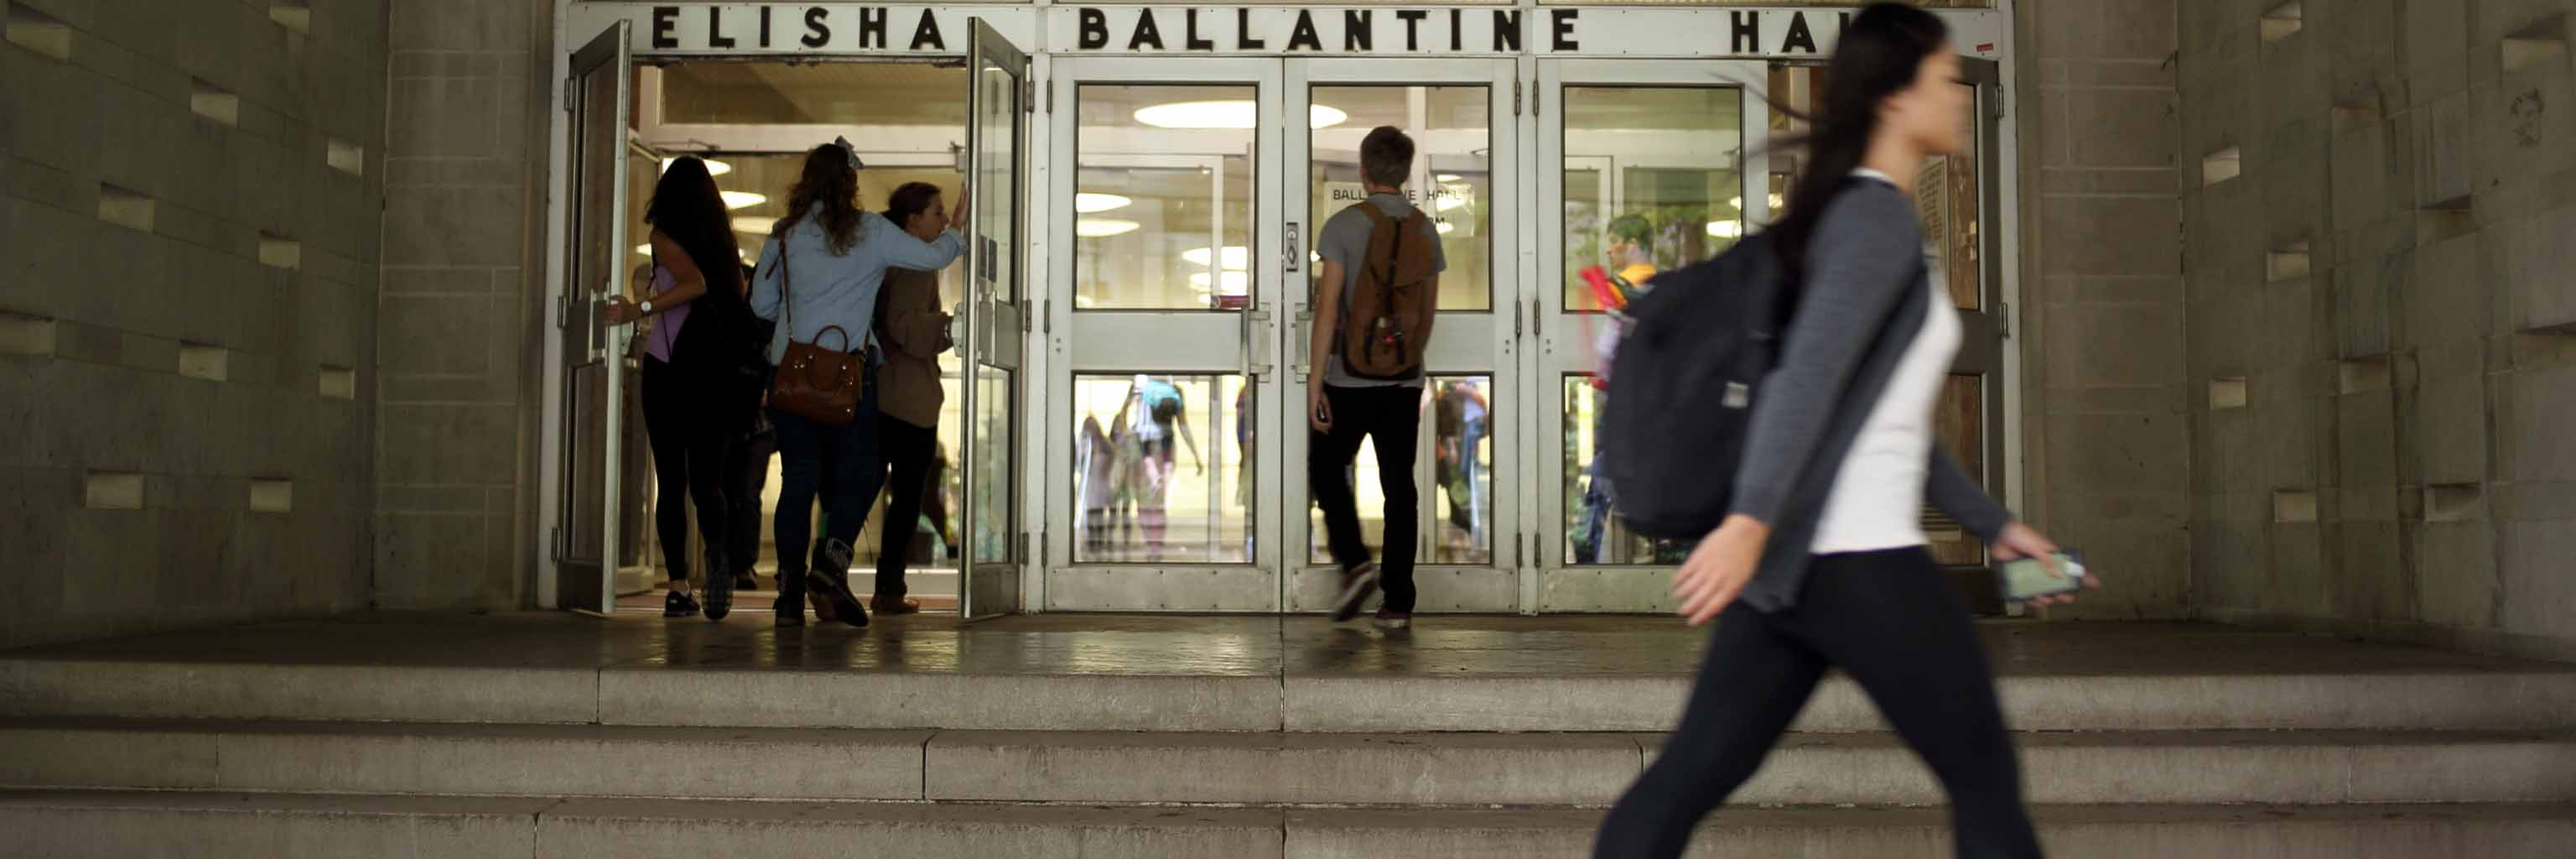 Students entering Ballantine Hall